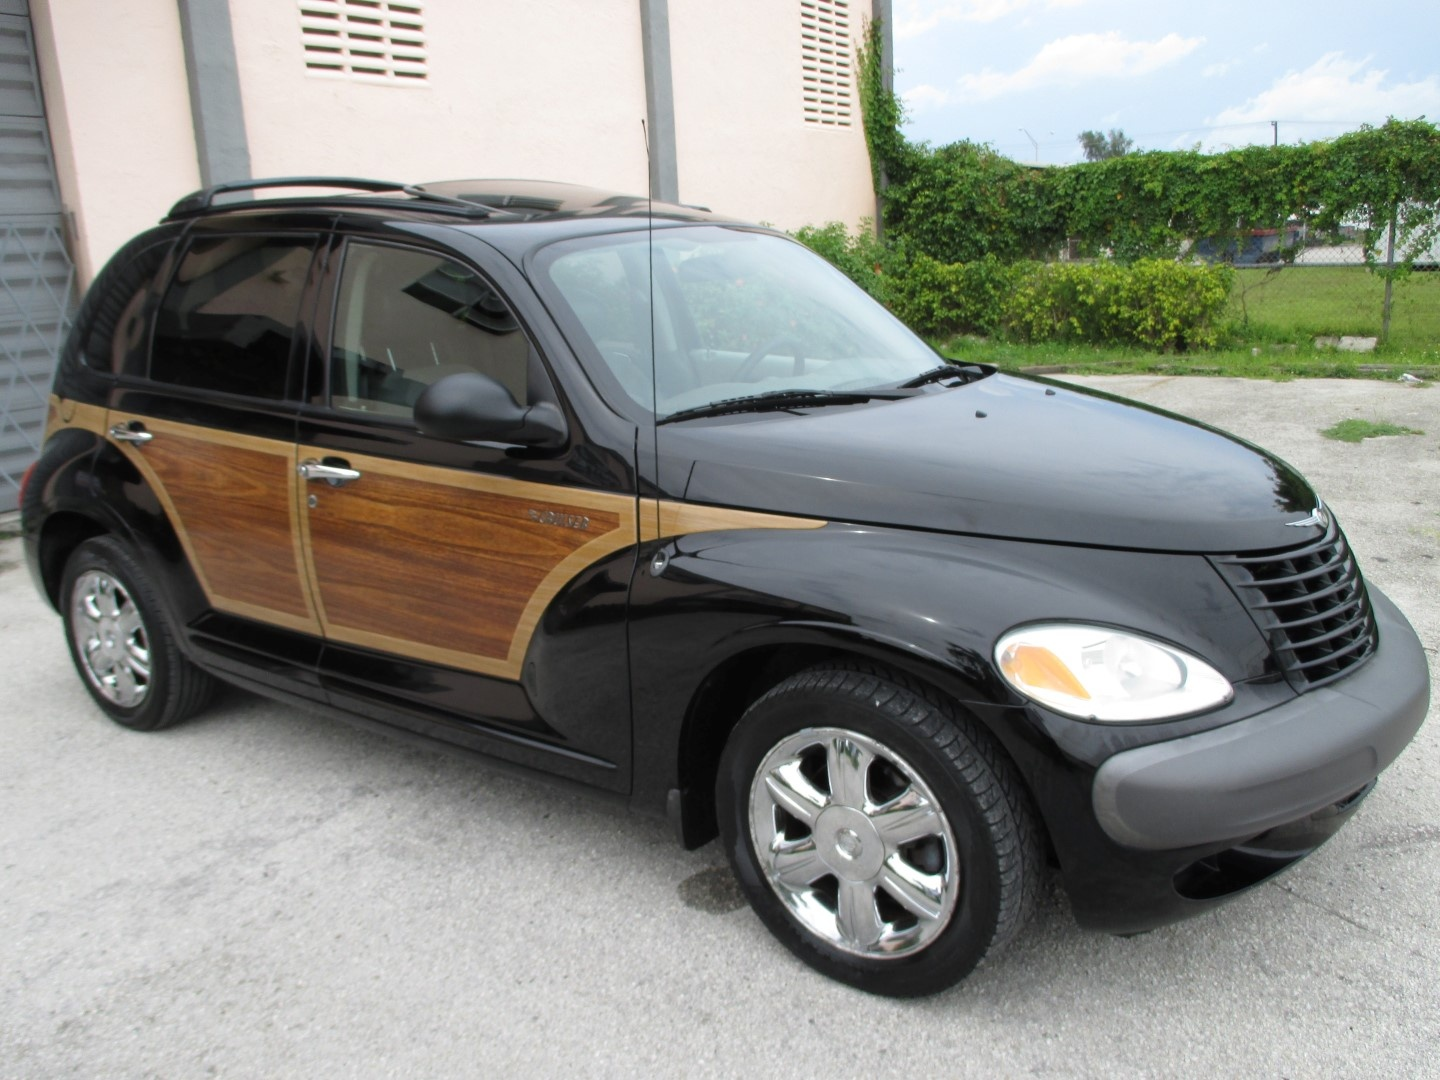 2002 chrysler pt cruiser pictures cargurus. Black Bedroom Furniture Sets. Home Design Ideas